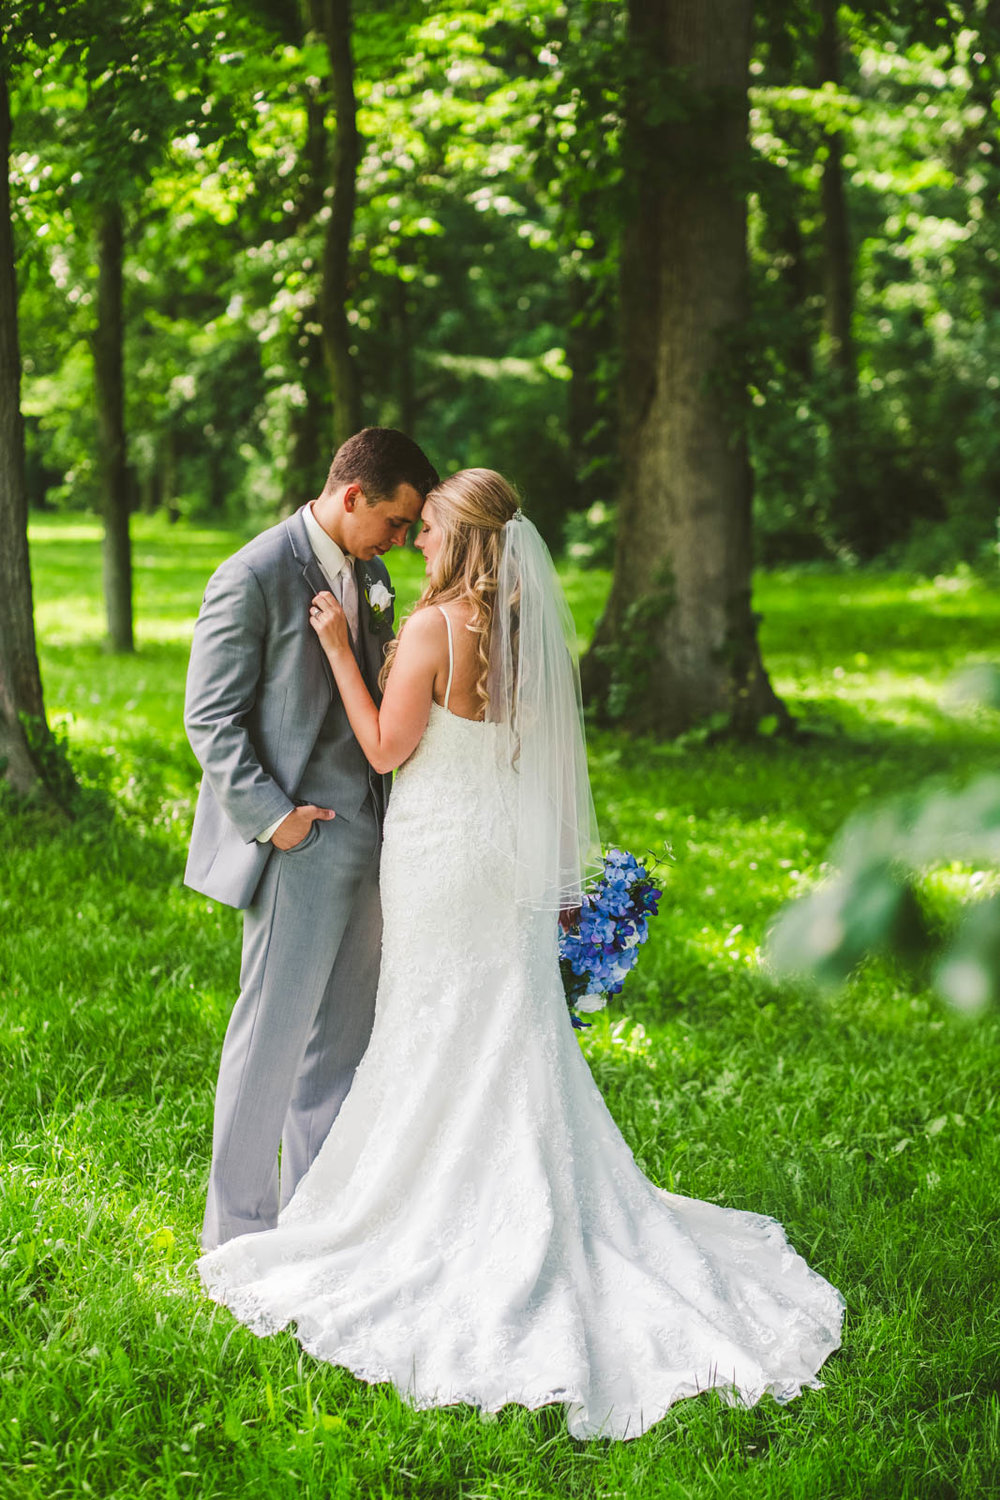 Bride and Groom on Wedding Day in Bowling Green Ohio at Stone Ridge Golf Club